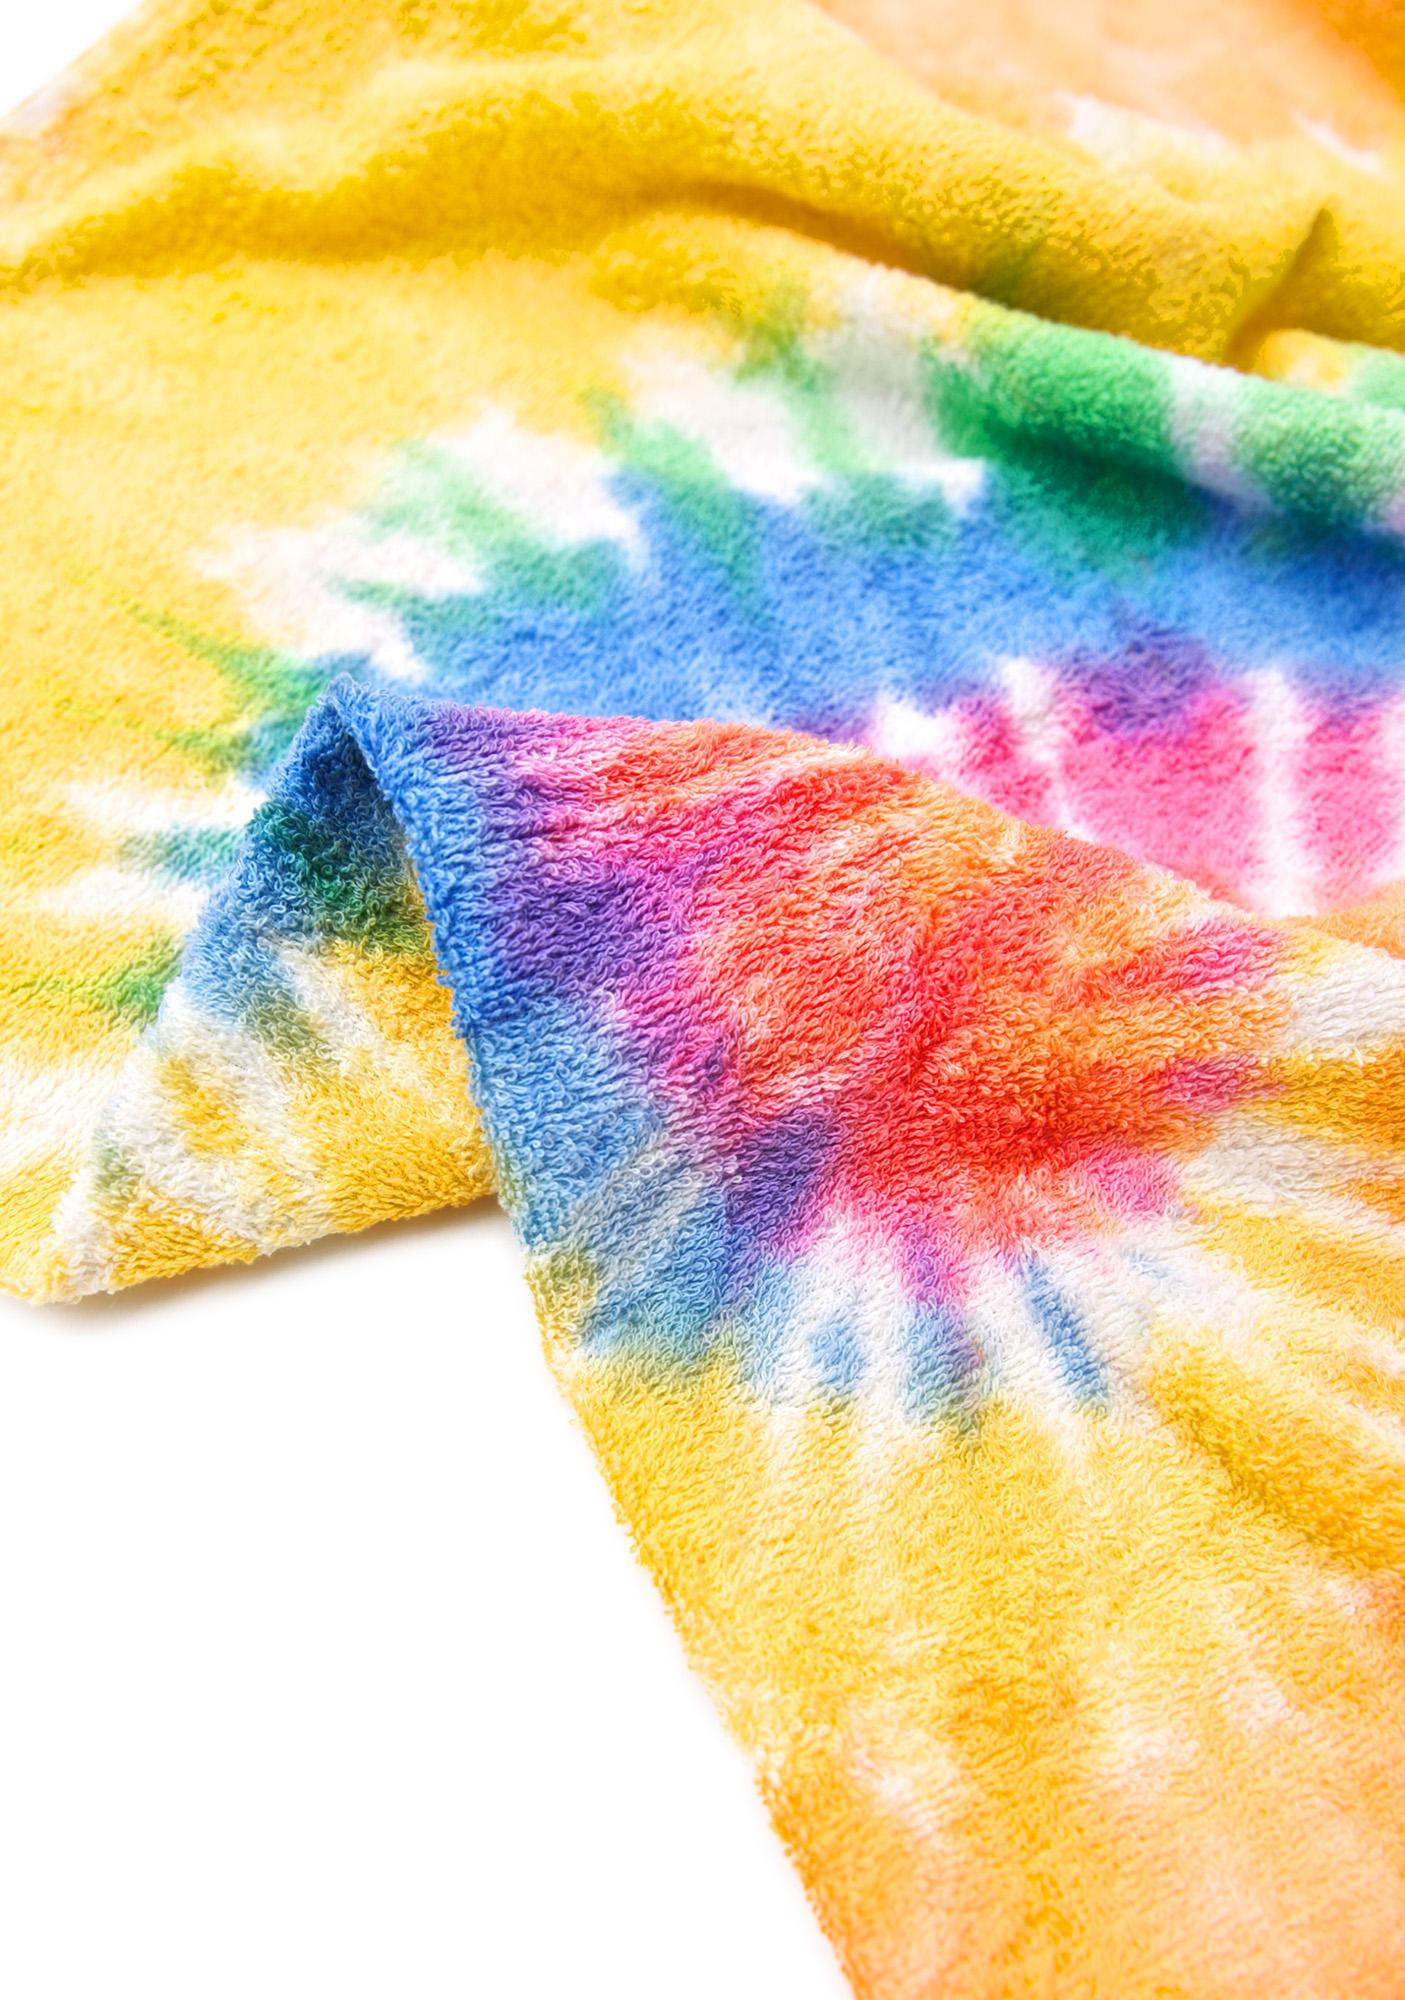 Eternity Tie Dye Beach Towel